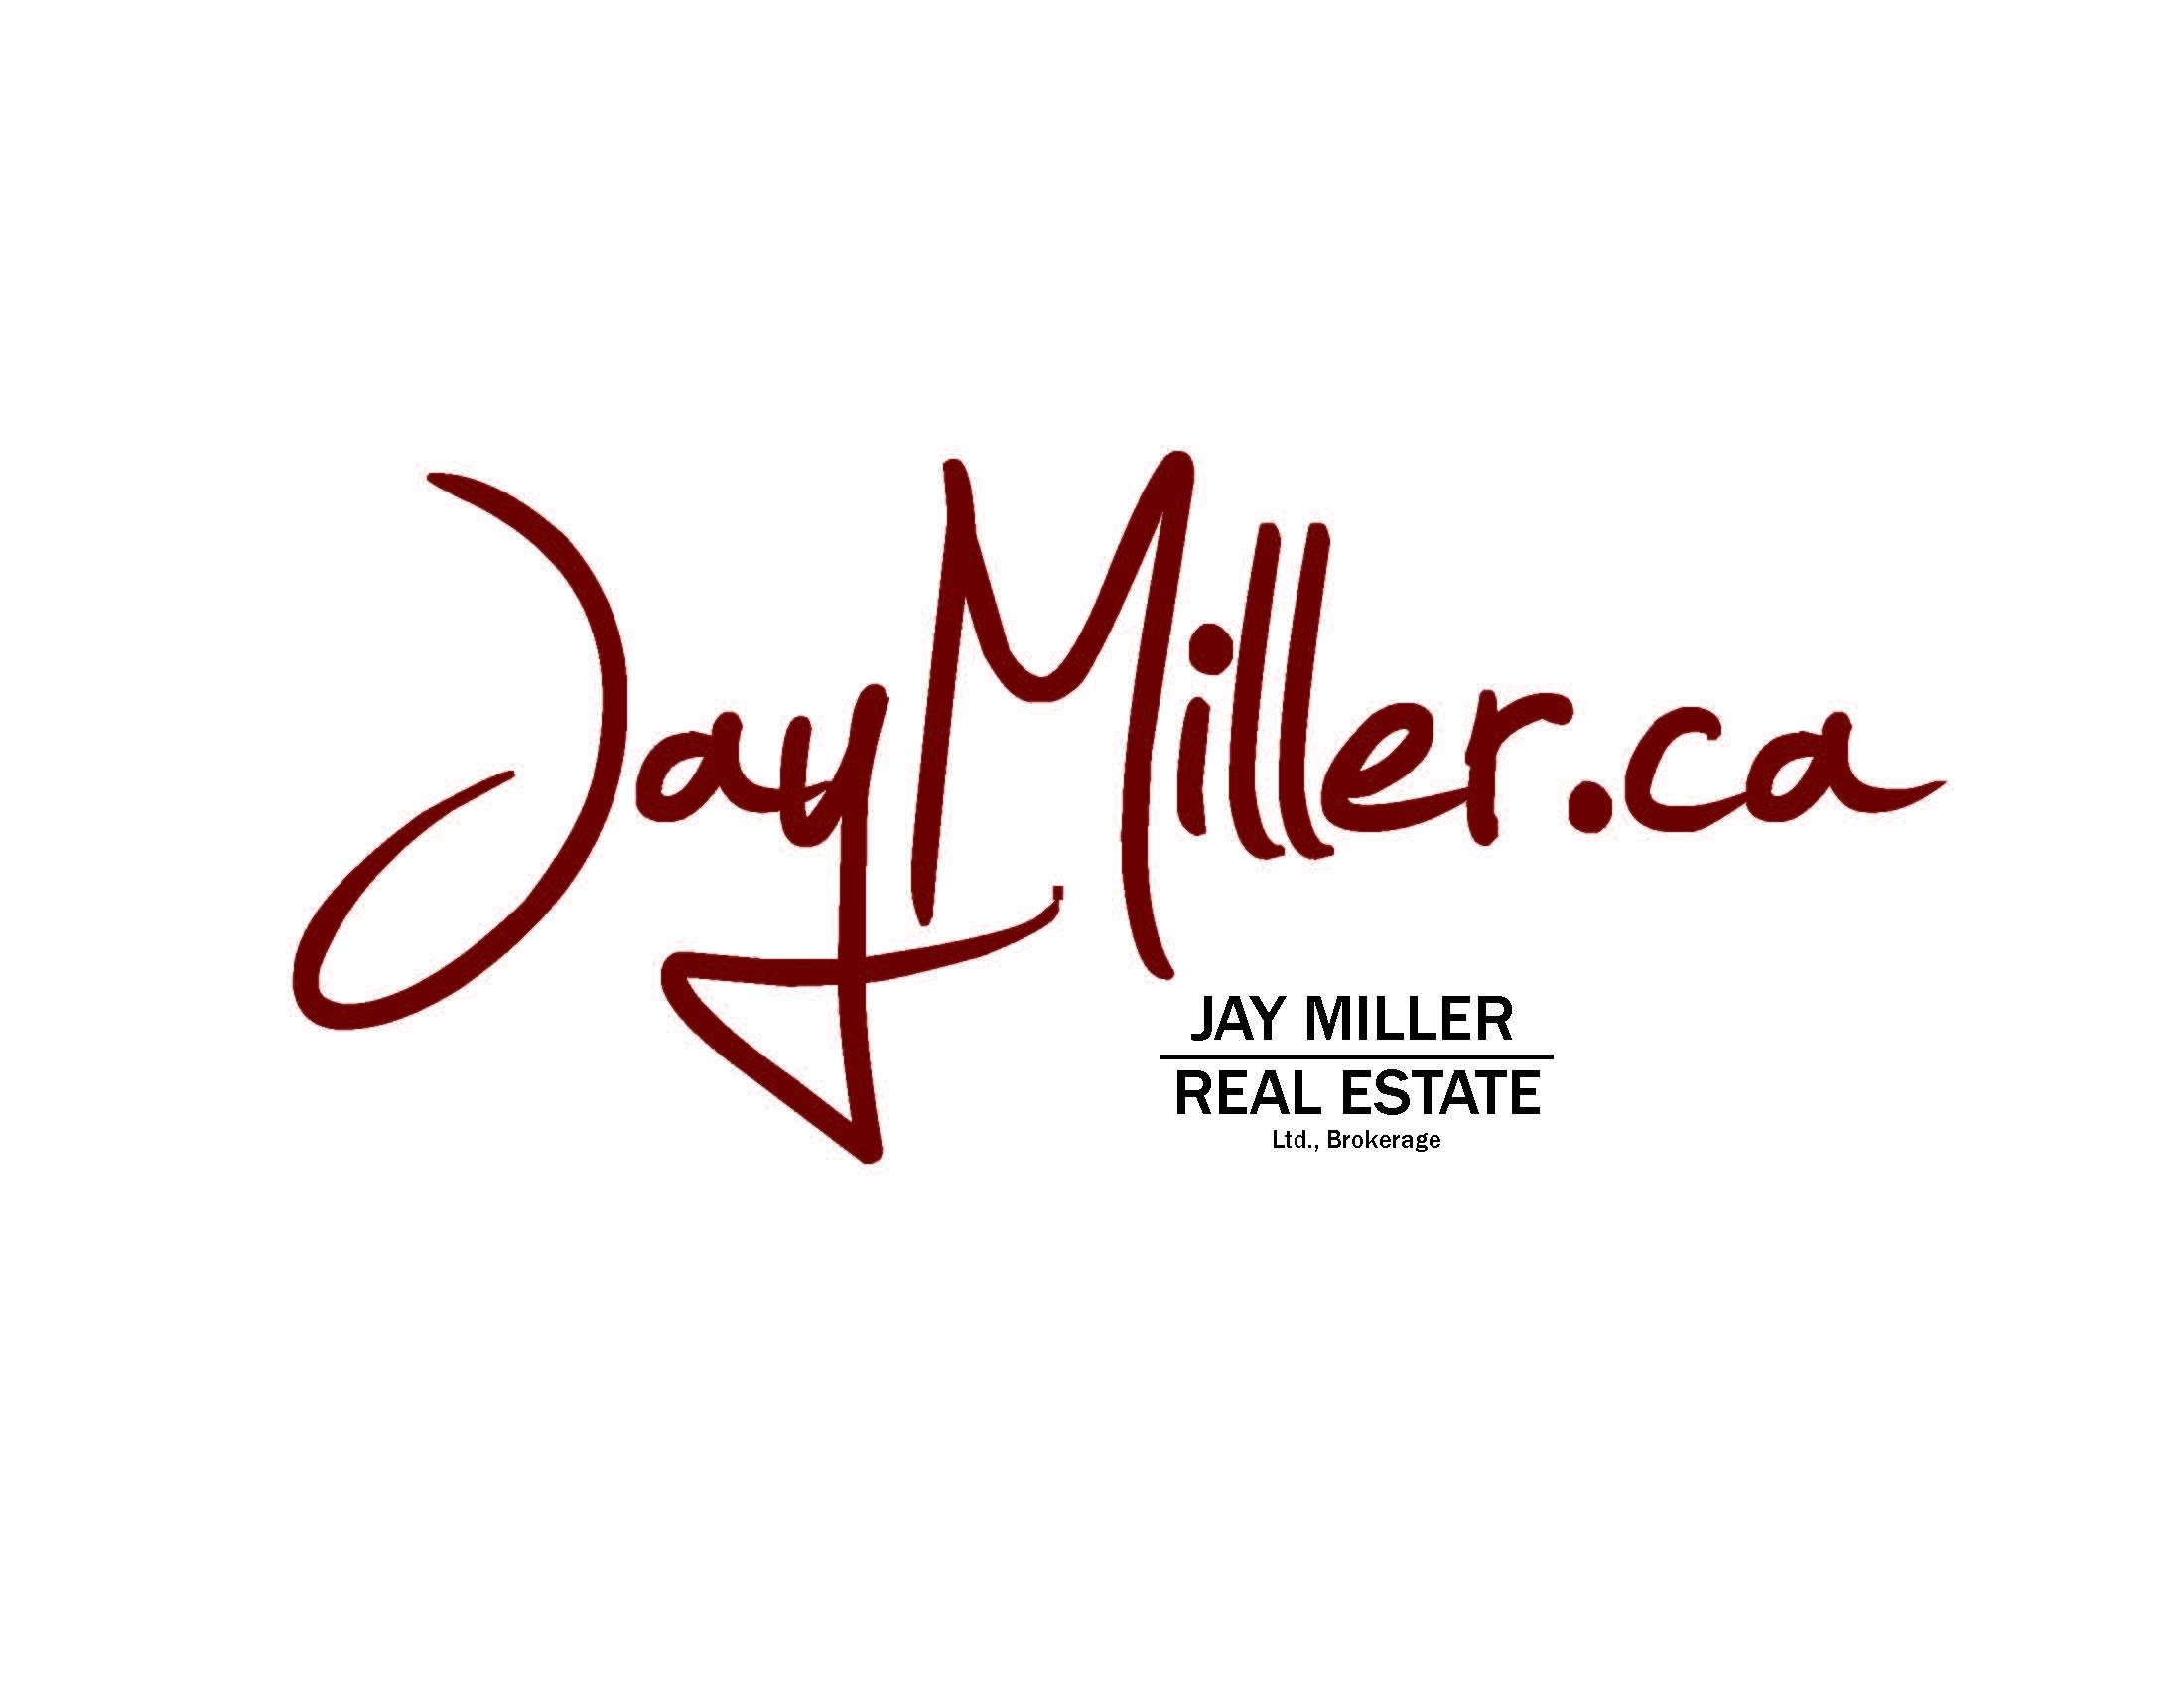 Sponsored by Jay Miller Real Estate